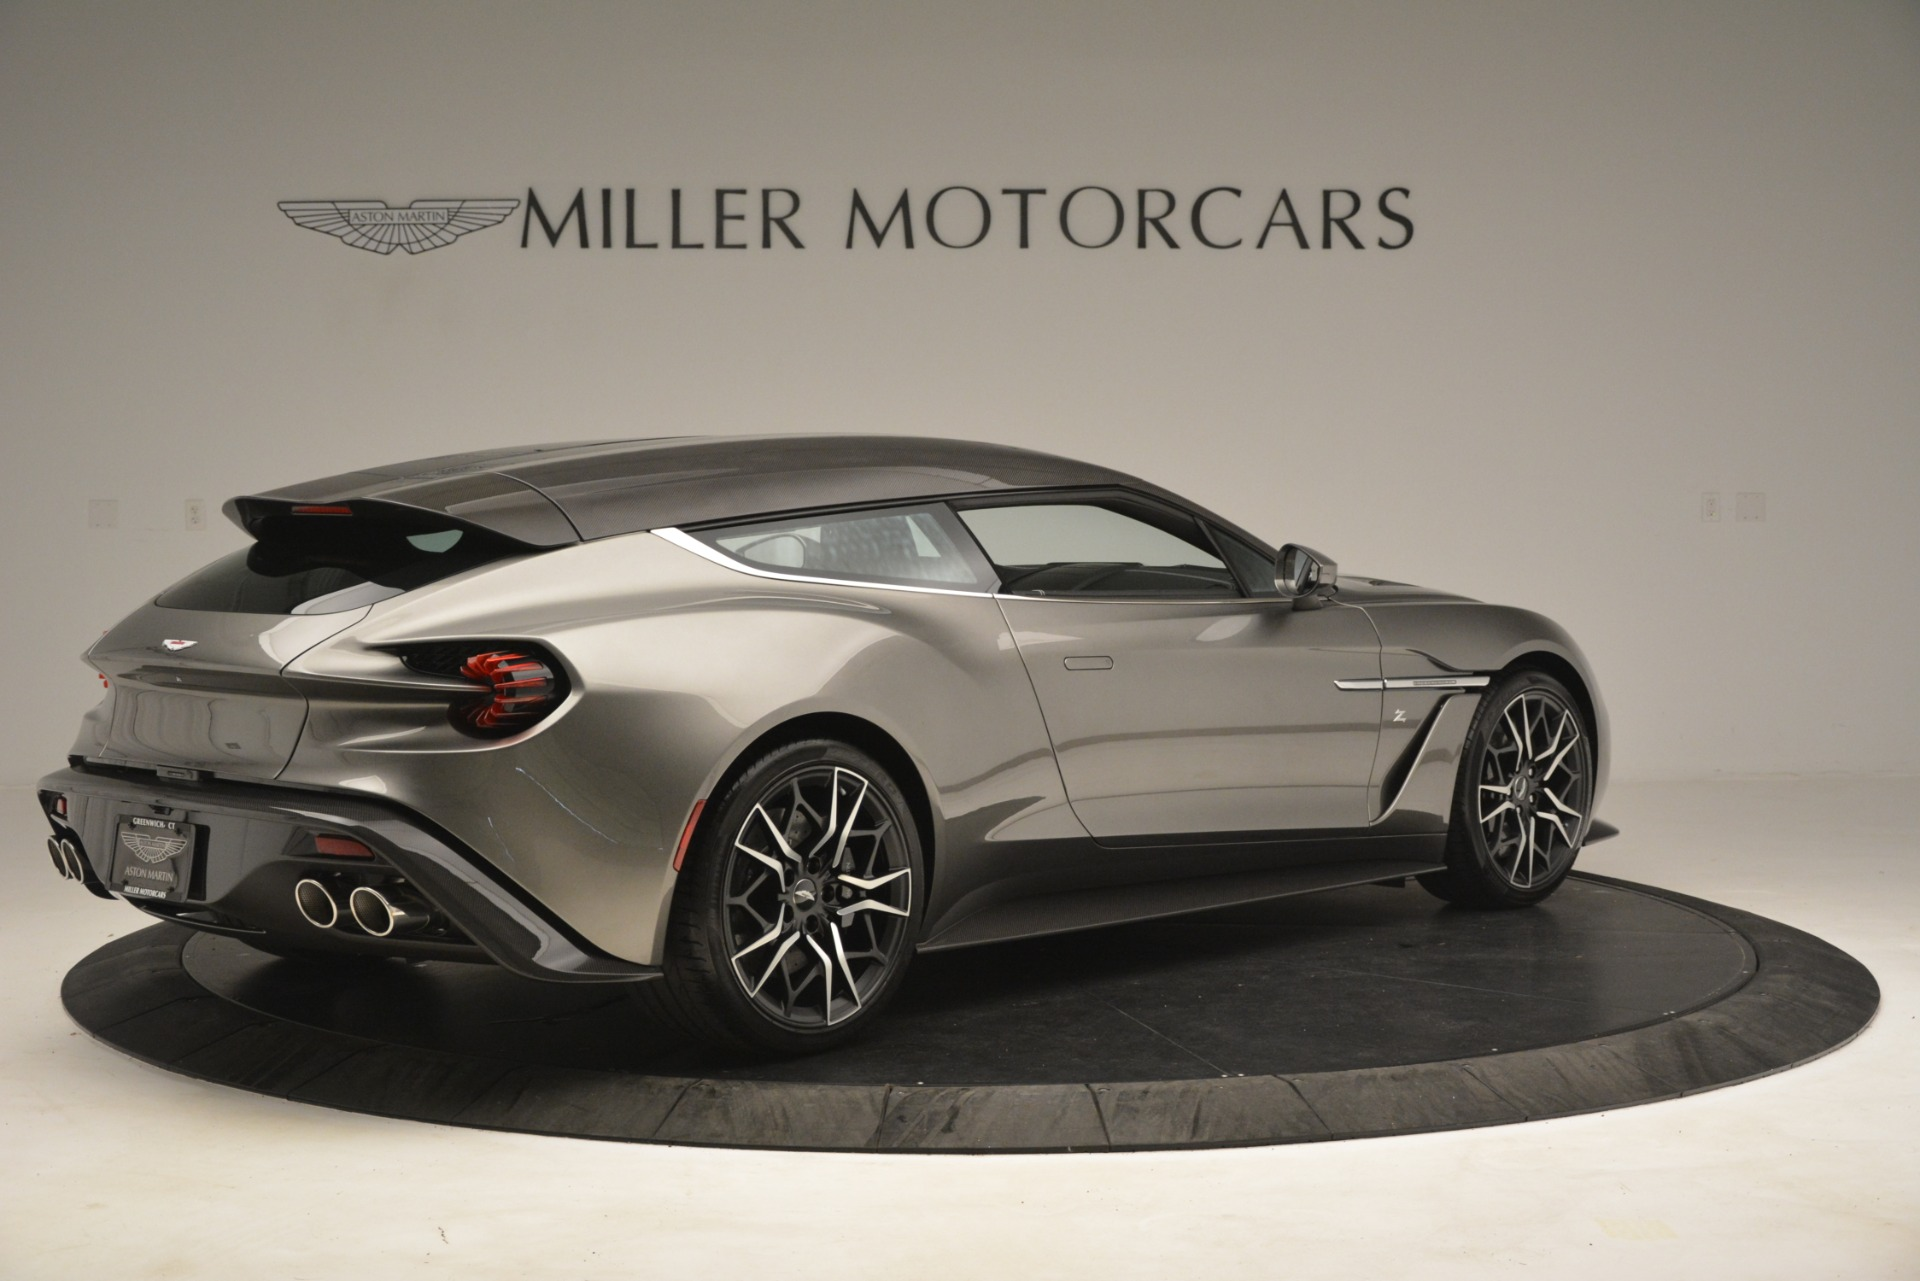 New 2019 Aston Martin Vanquish Zagato Shooting Brake | Greenwich, CT